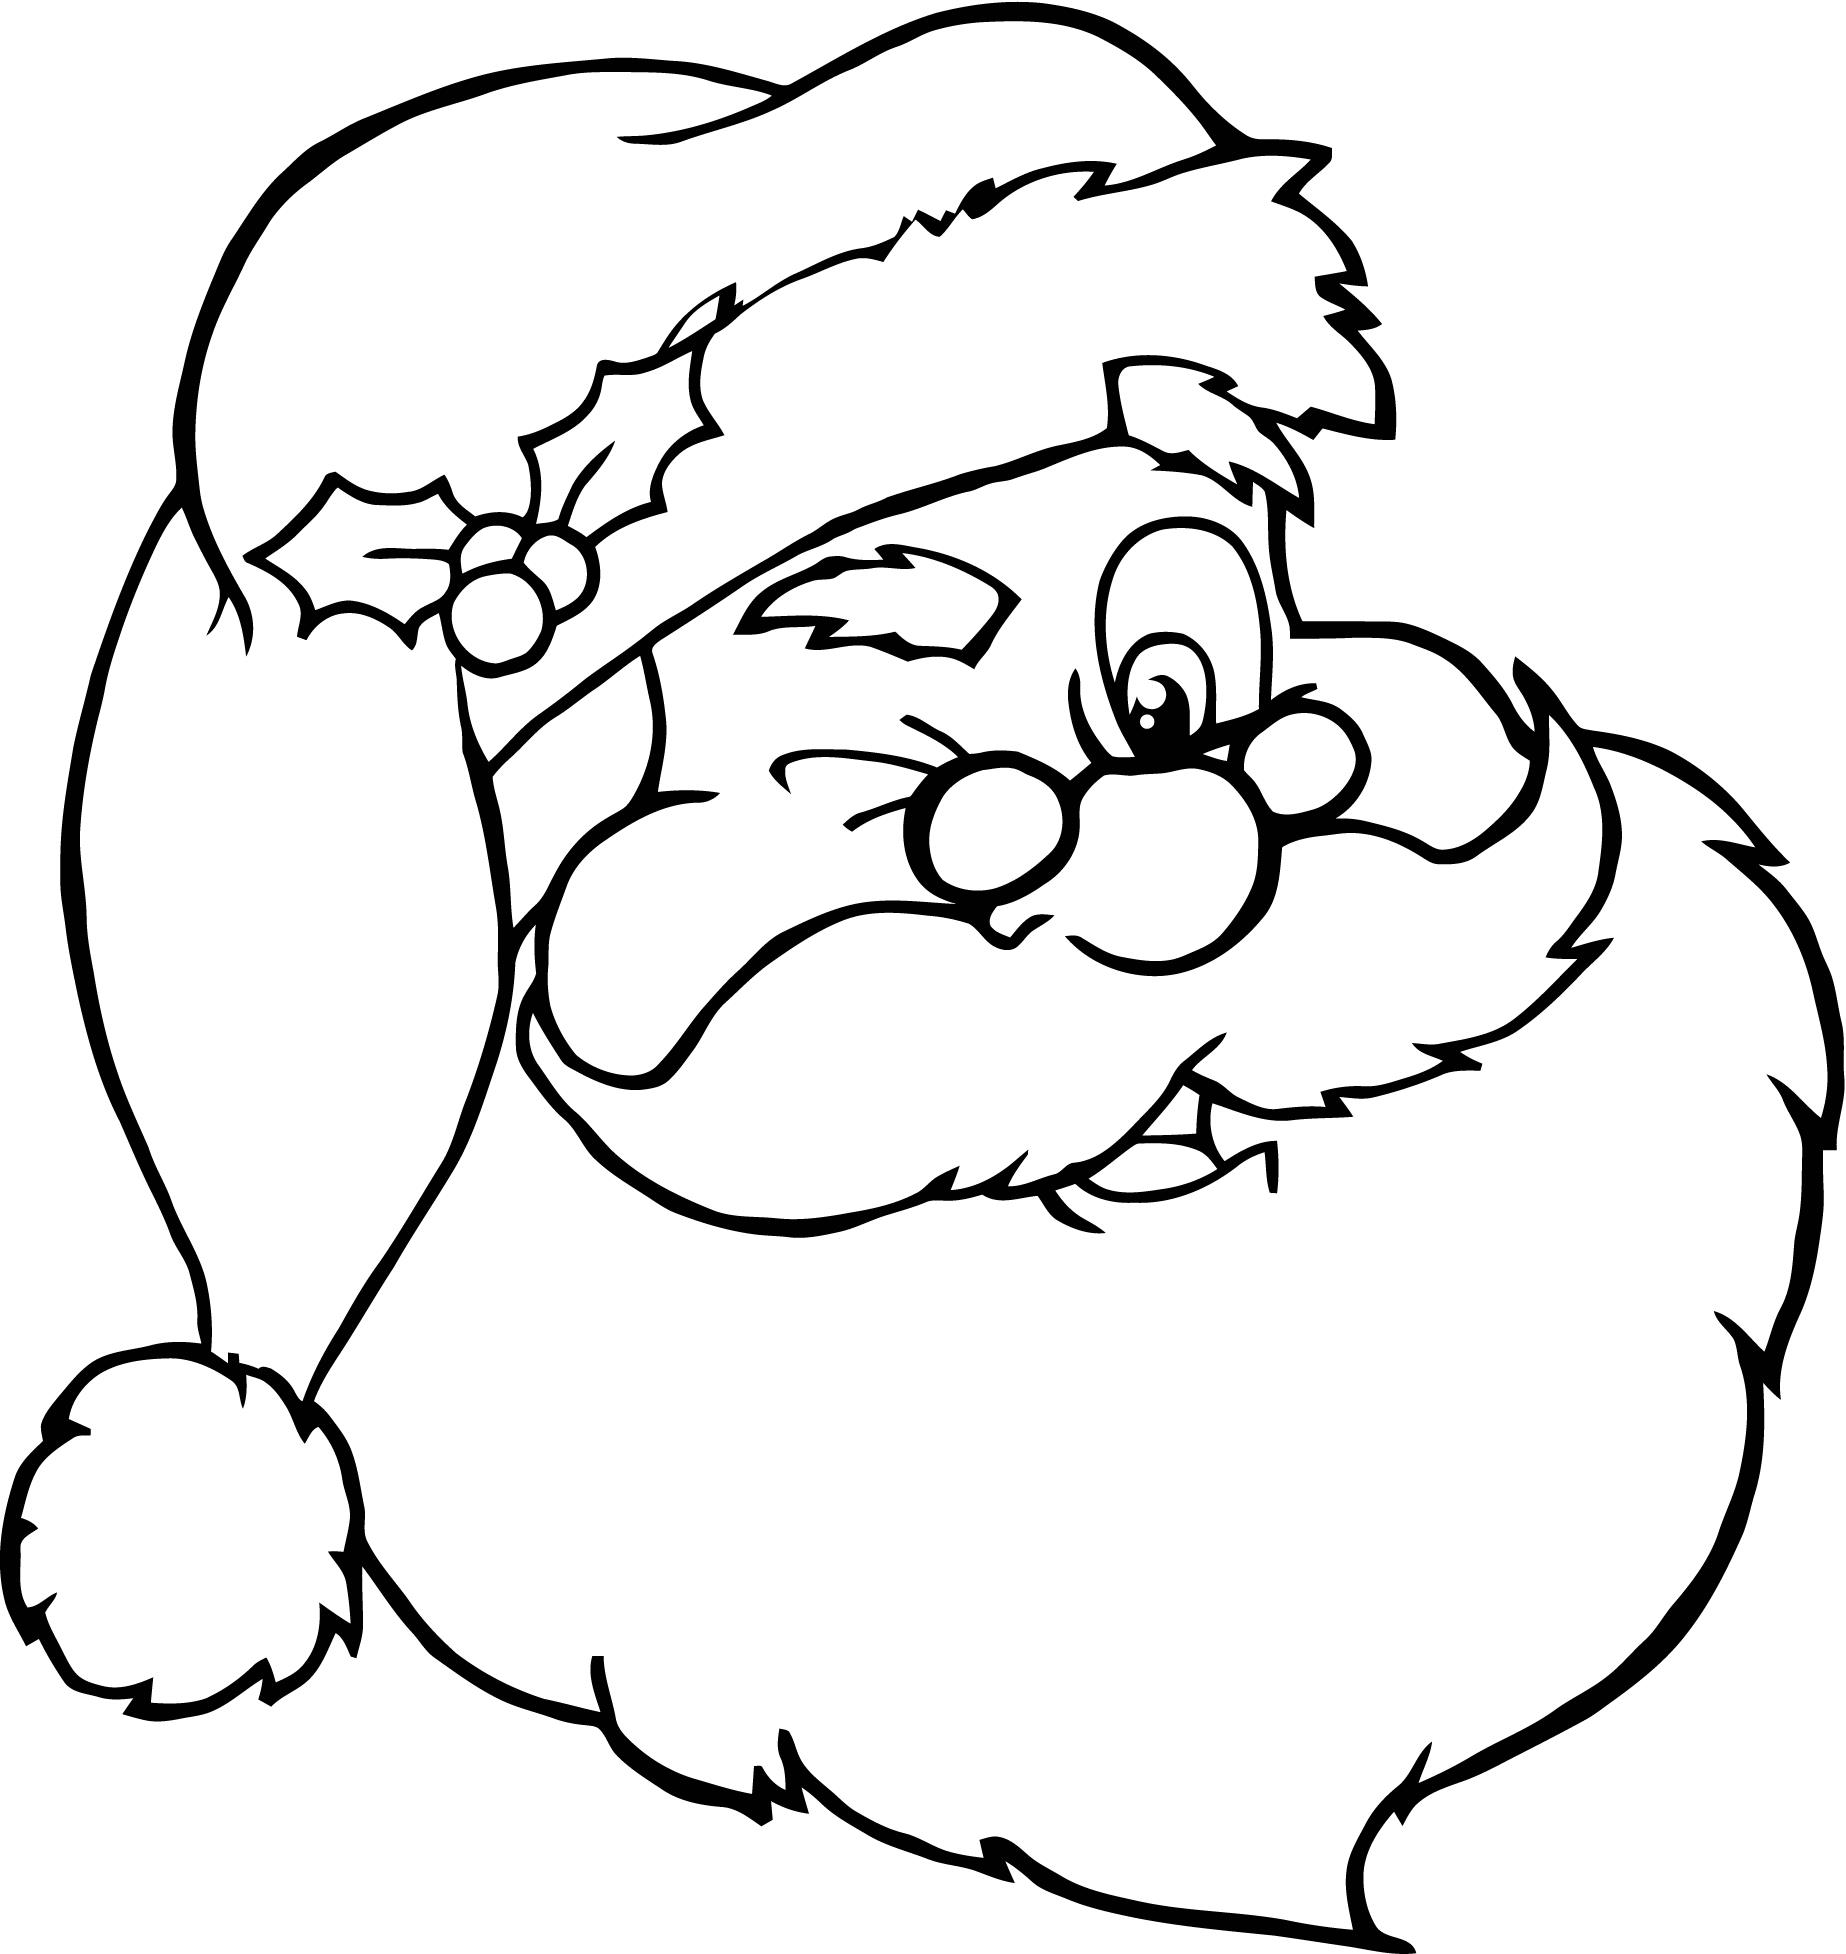 coloring pictures of santa claus santa clause came to my town tyrocharm coloring pictures claus santa of